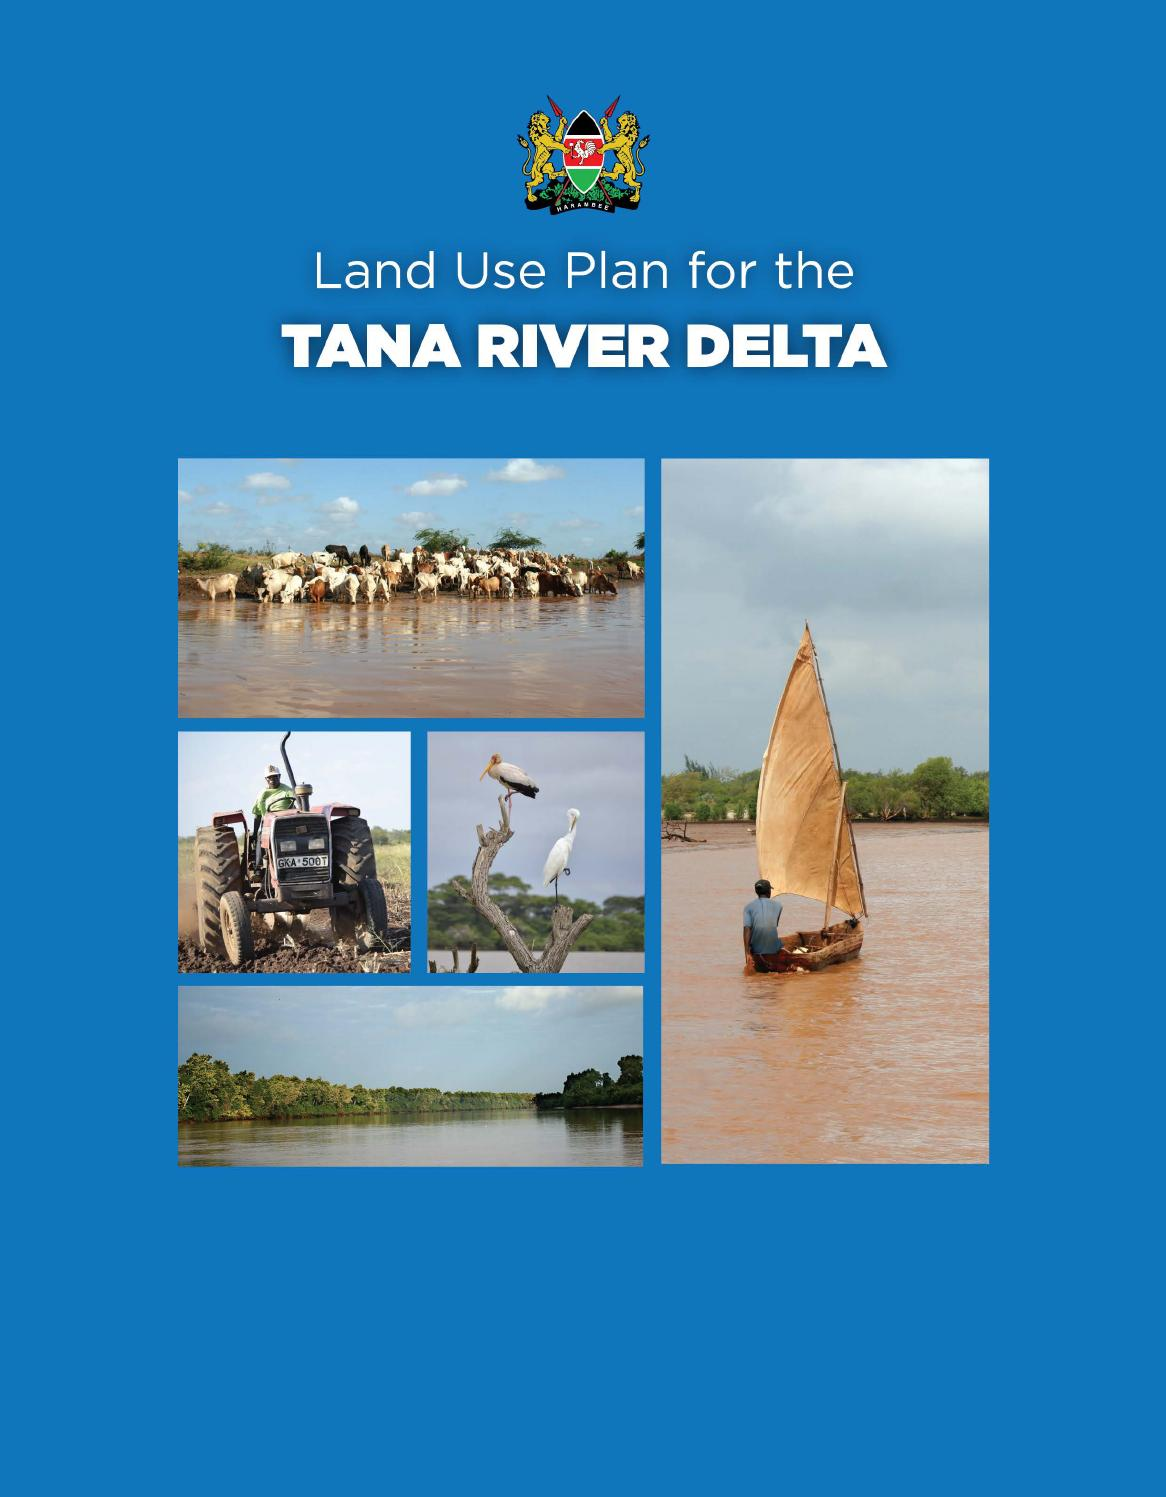 Tana River Delta Land Use Plan By Nature Kenya Publications Issuu Surface Wiring Conduit The Garage Journal Board